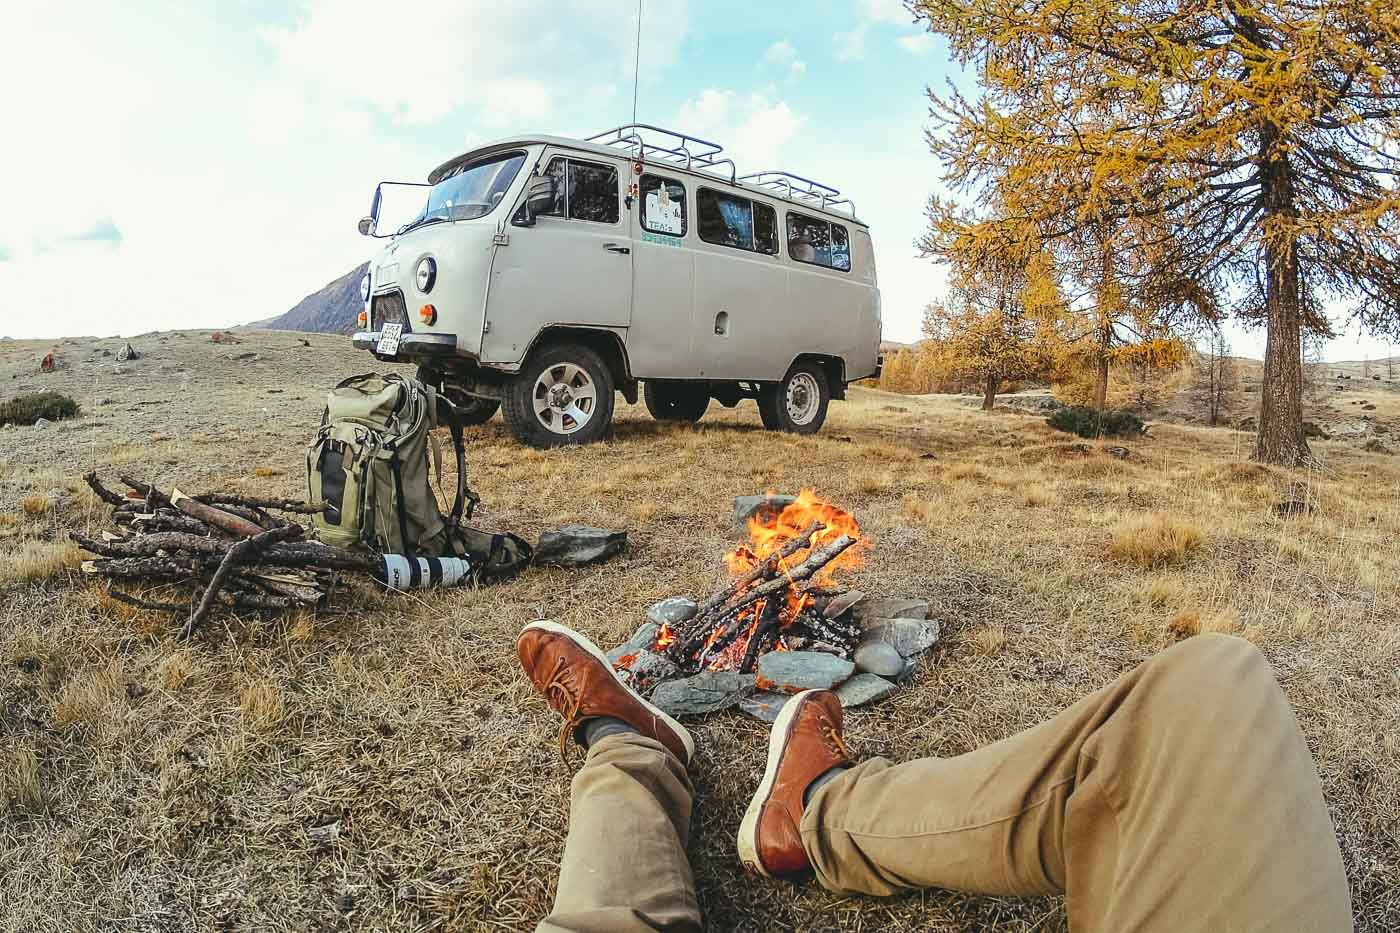 campfire next to the van in the Alta Mountains of Mongolia